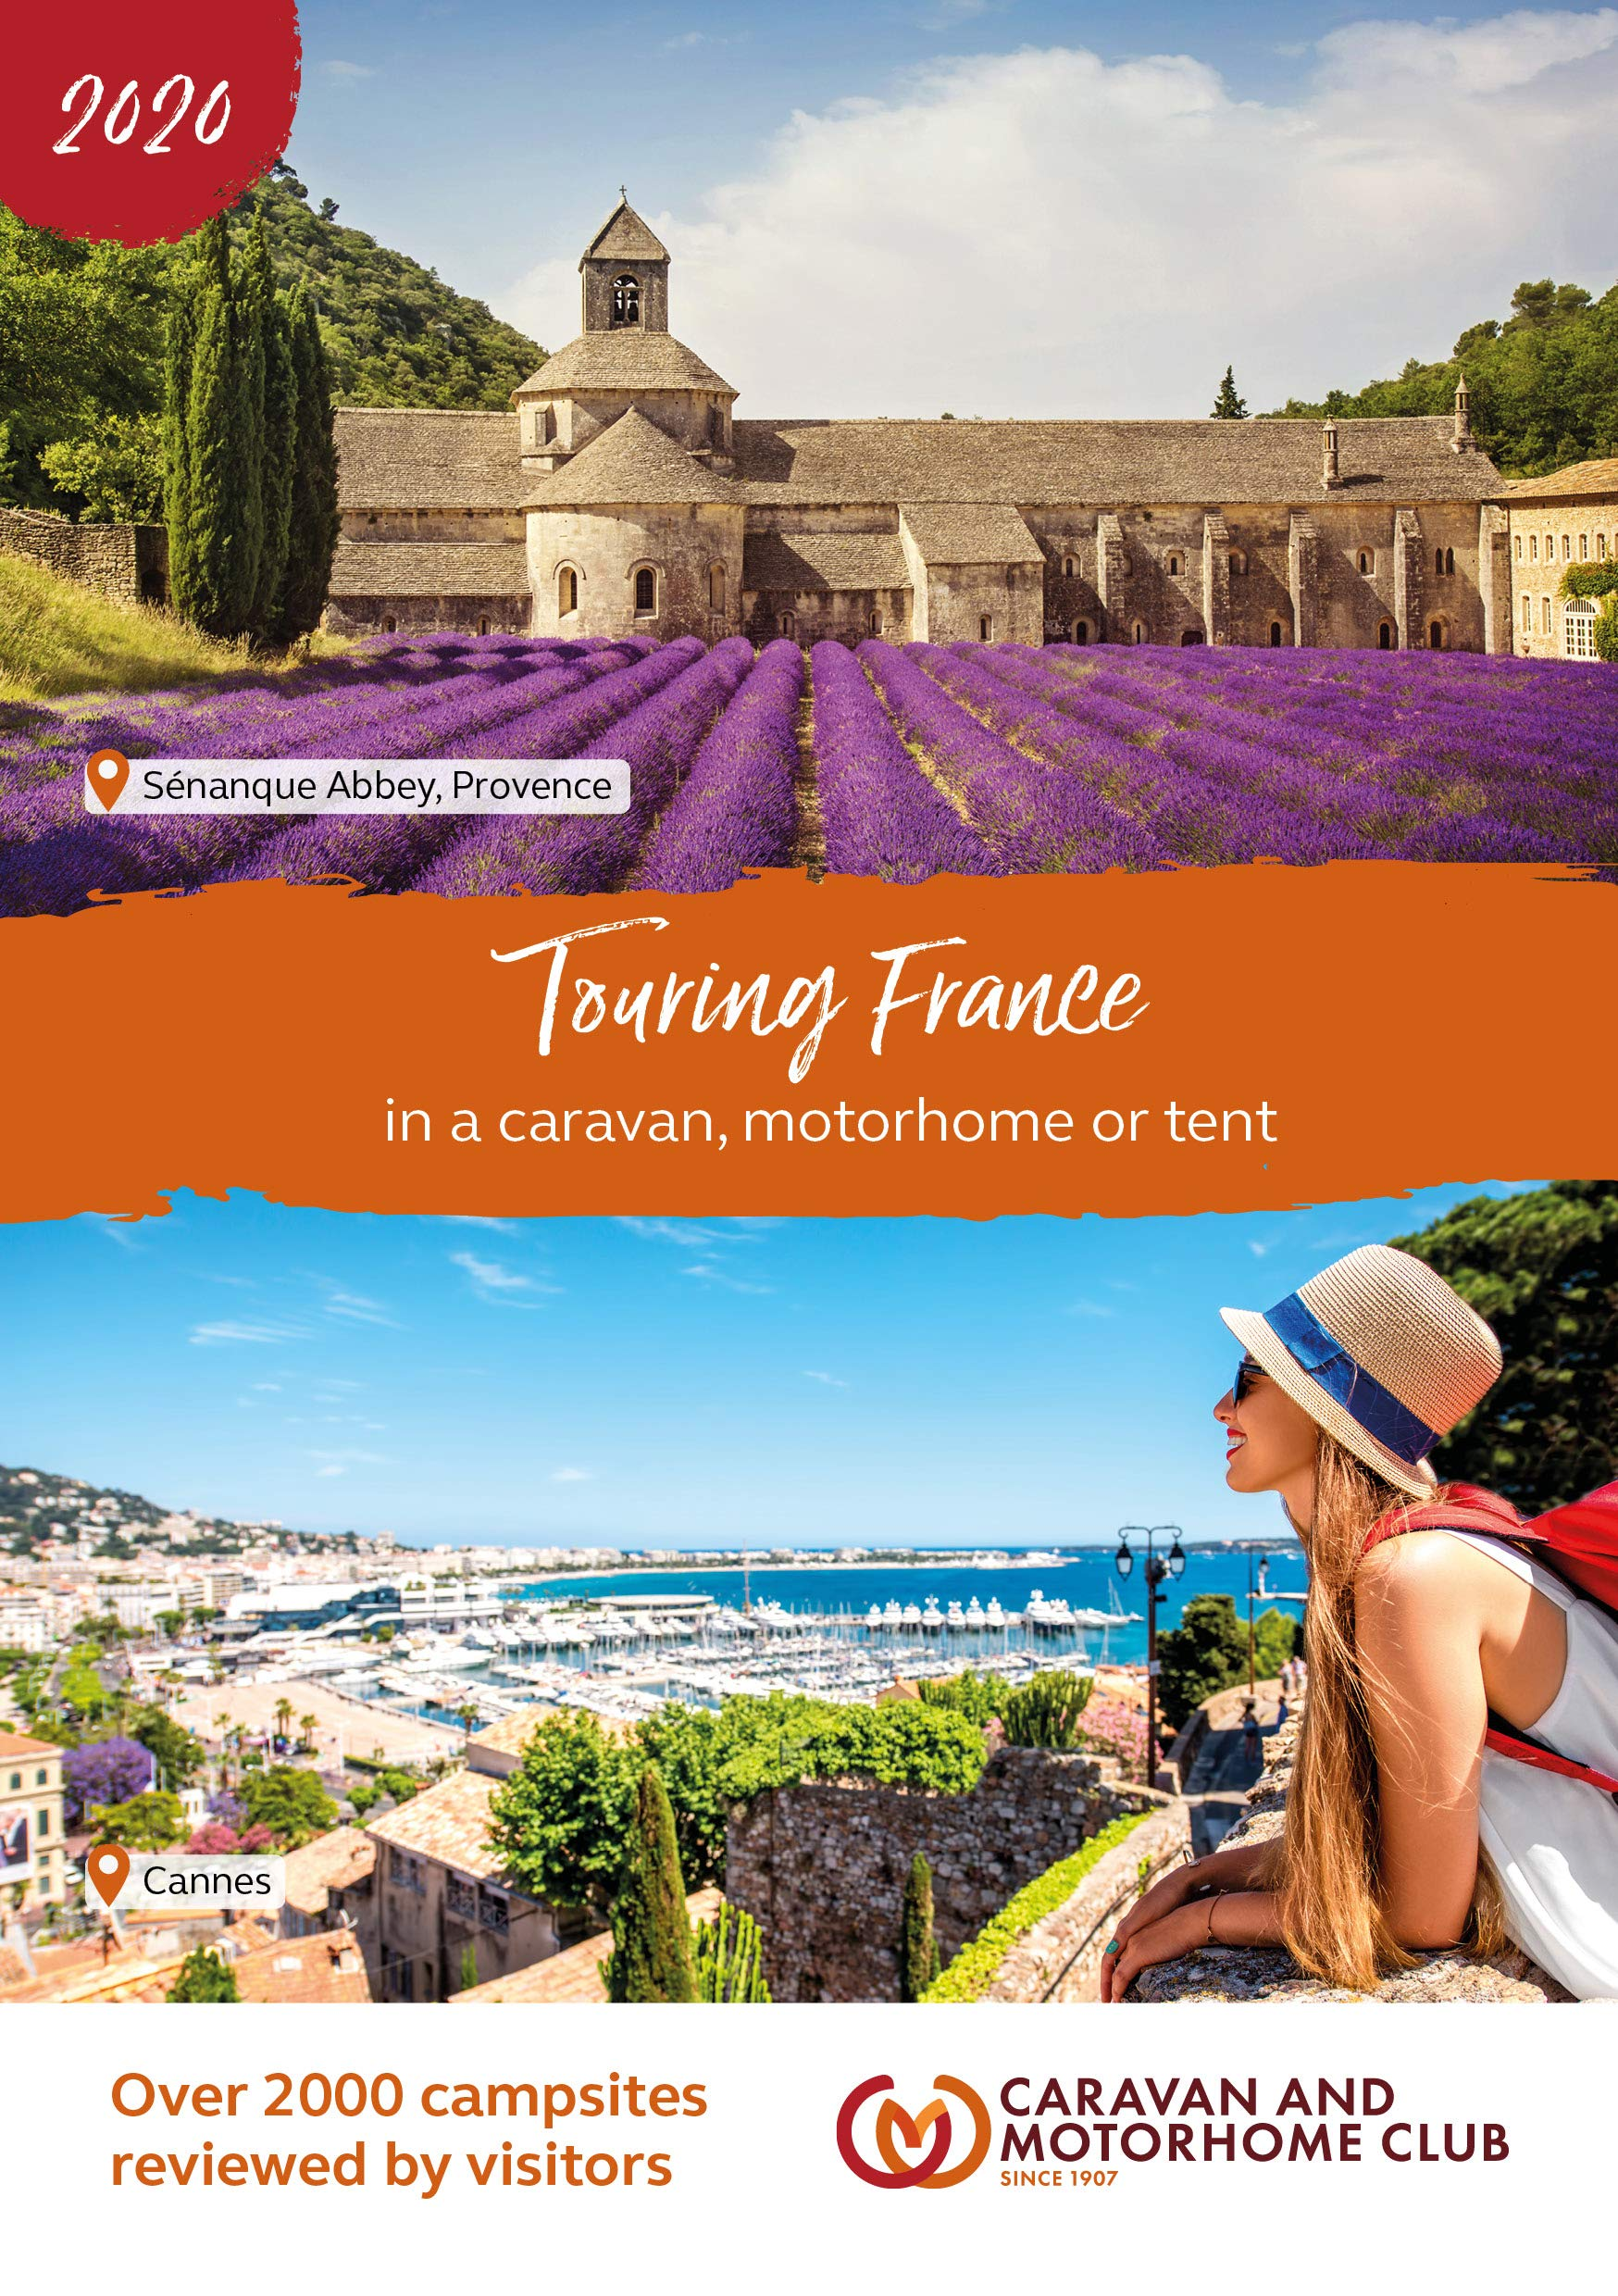 Touring France 2020: In a Caravan, Motorhome or Tent